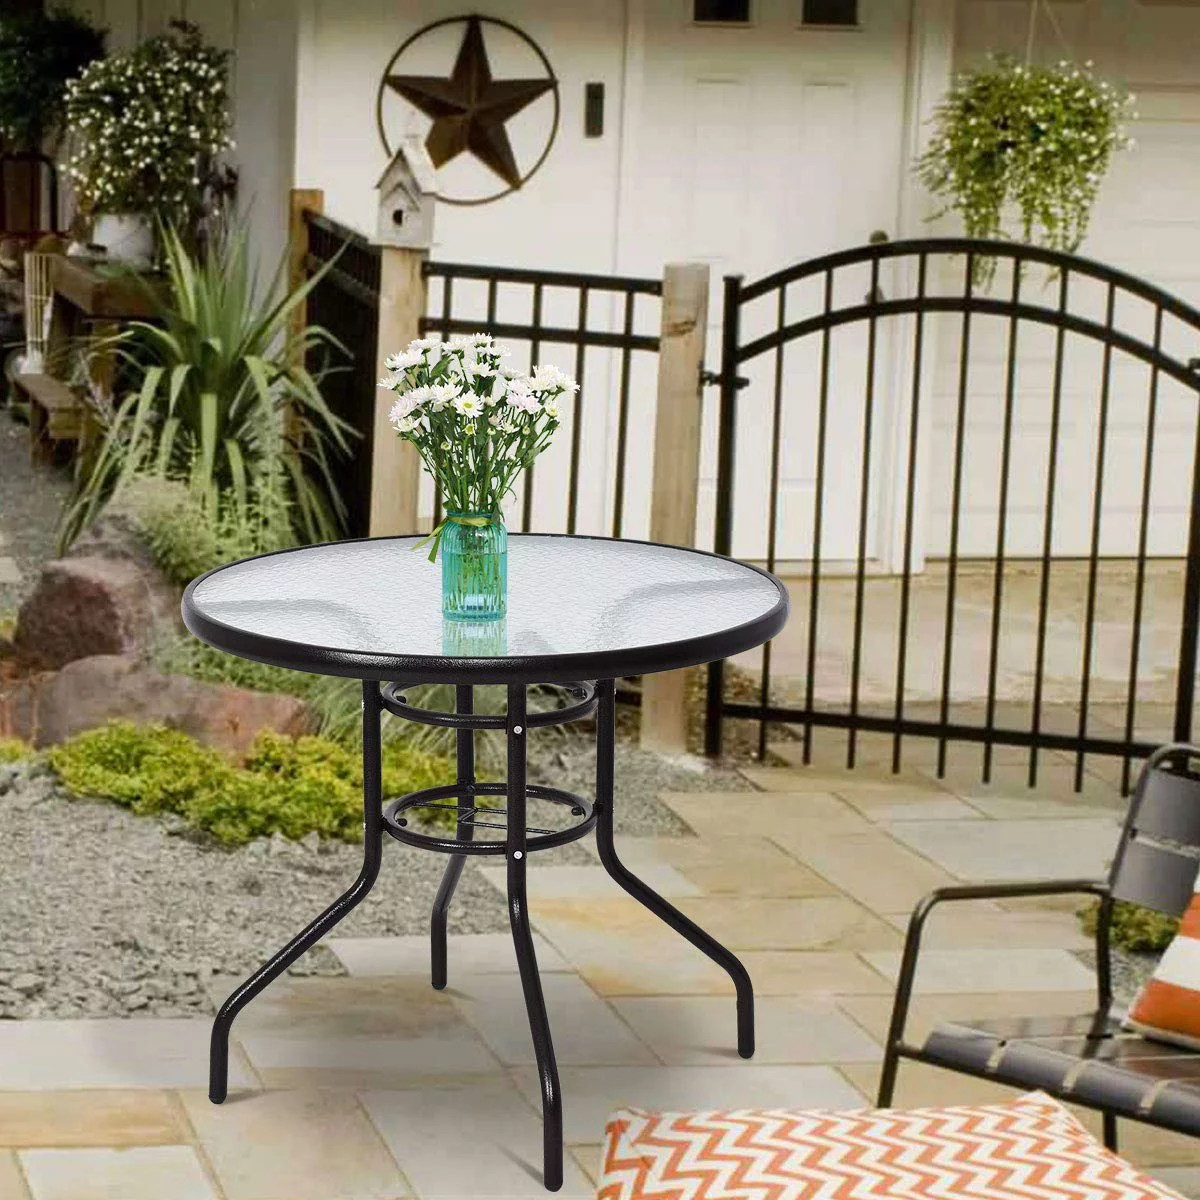 round glass patio dining table 31 tempered glass top metal frame patio table outside side tables w umbrella hole conversation coffee table for